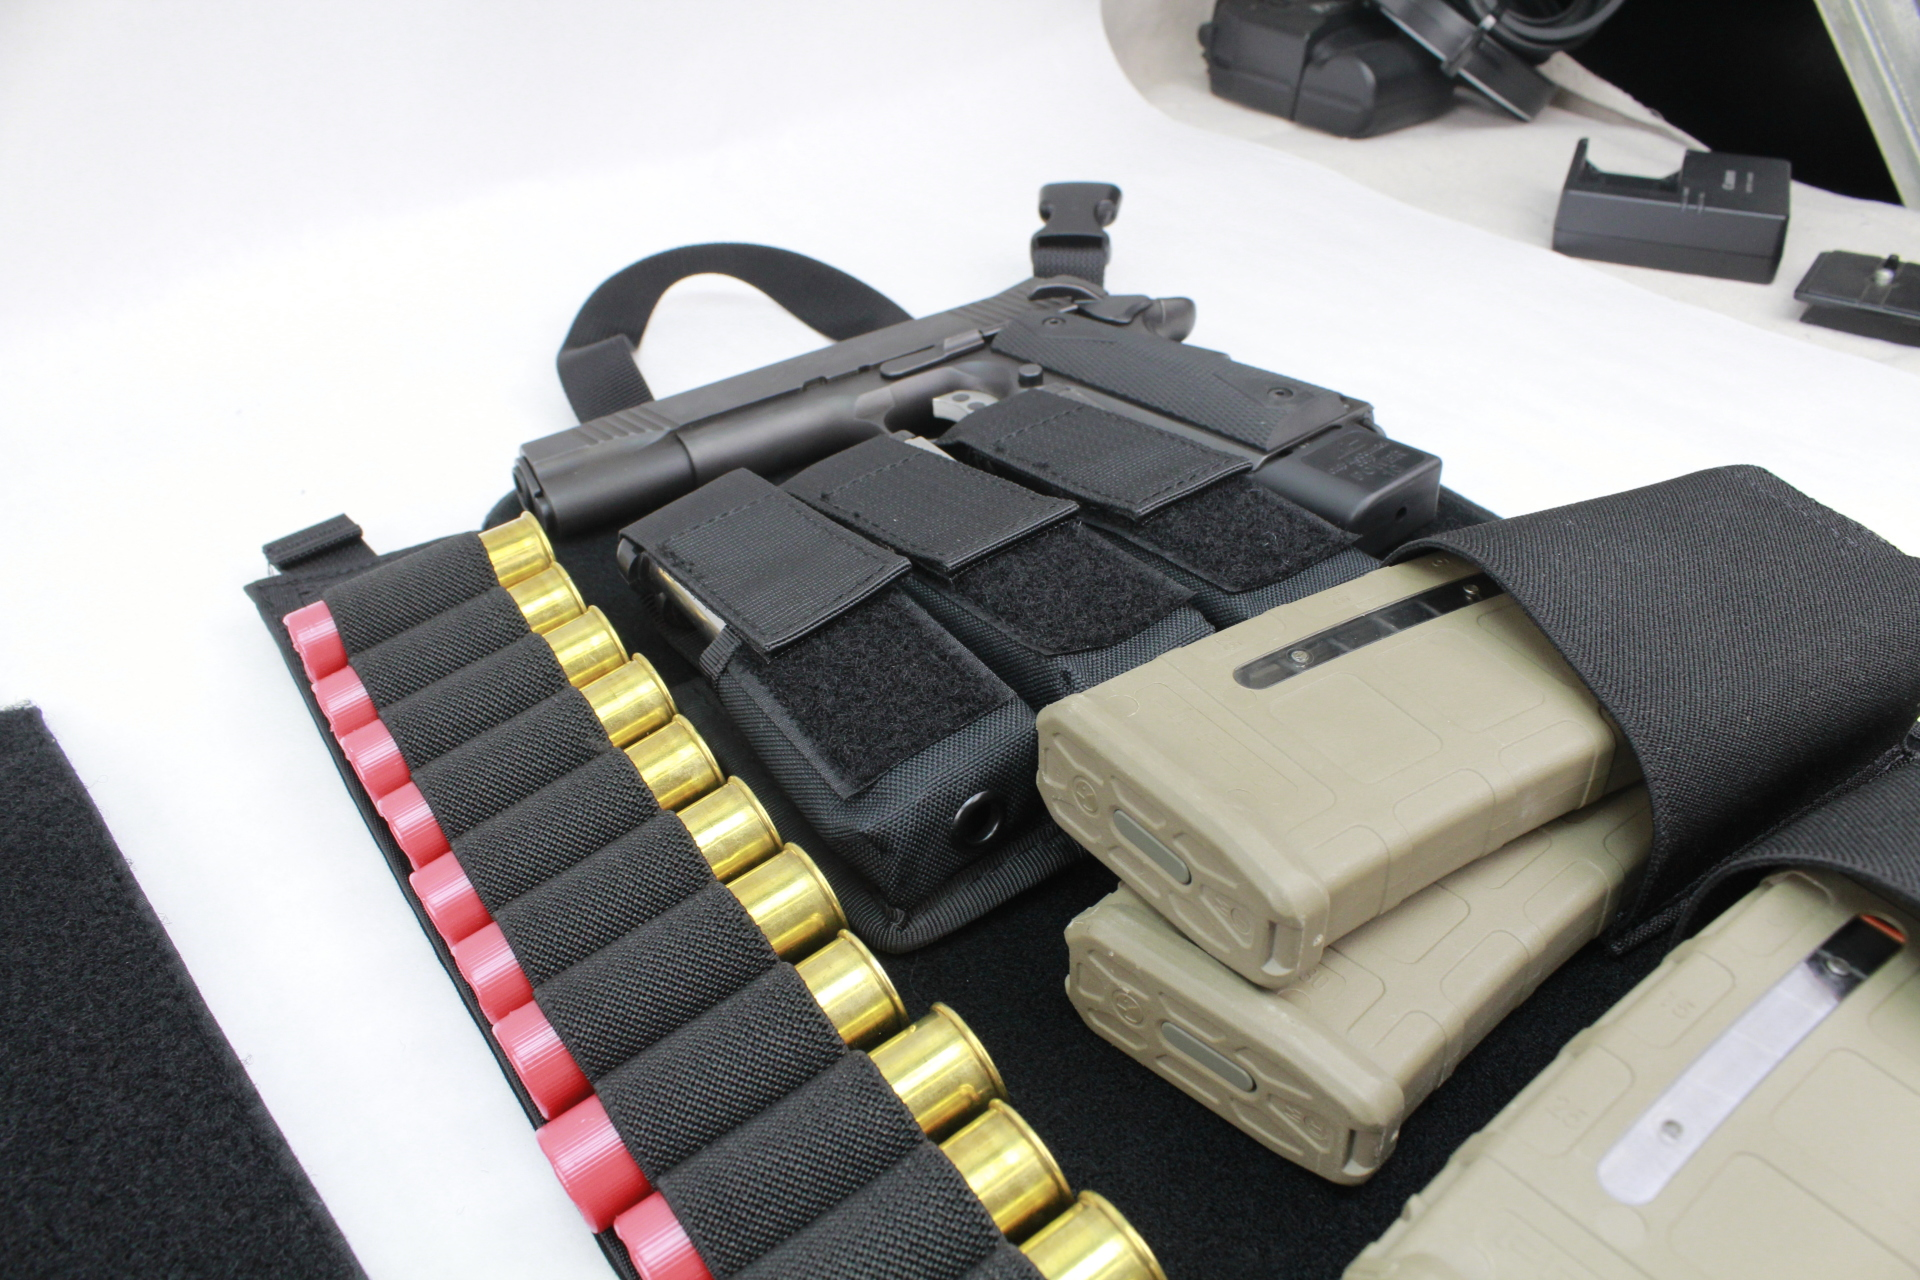 Large Tactical DASH bag panel view